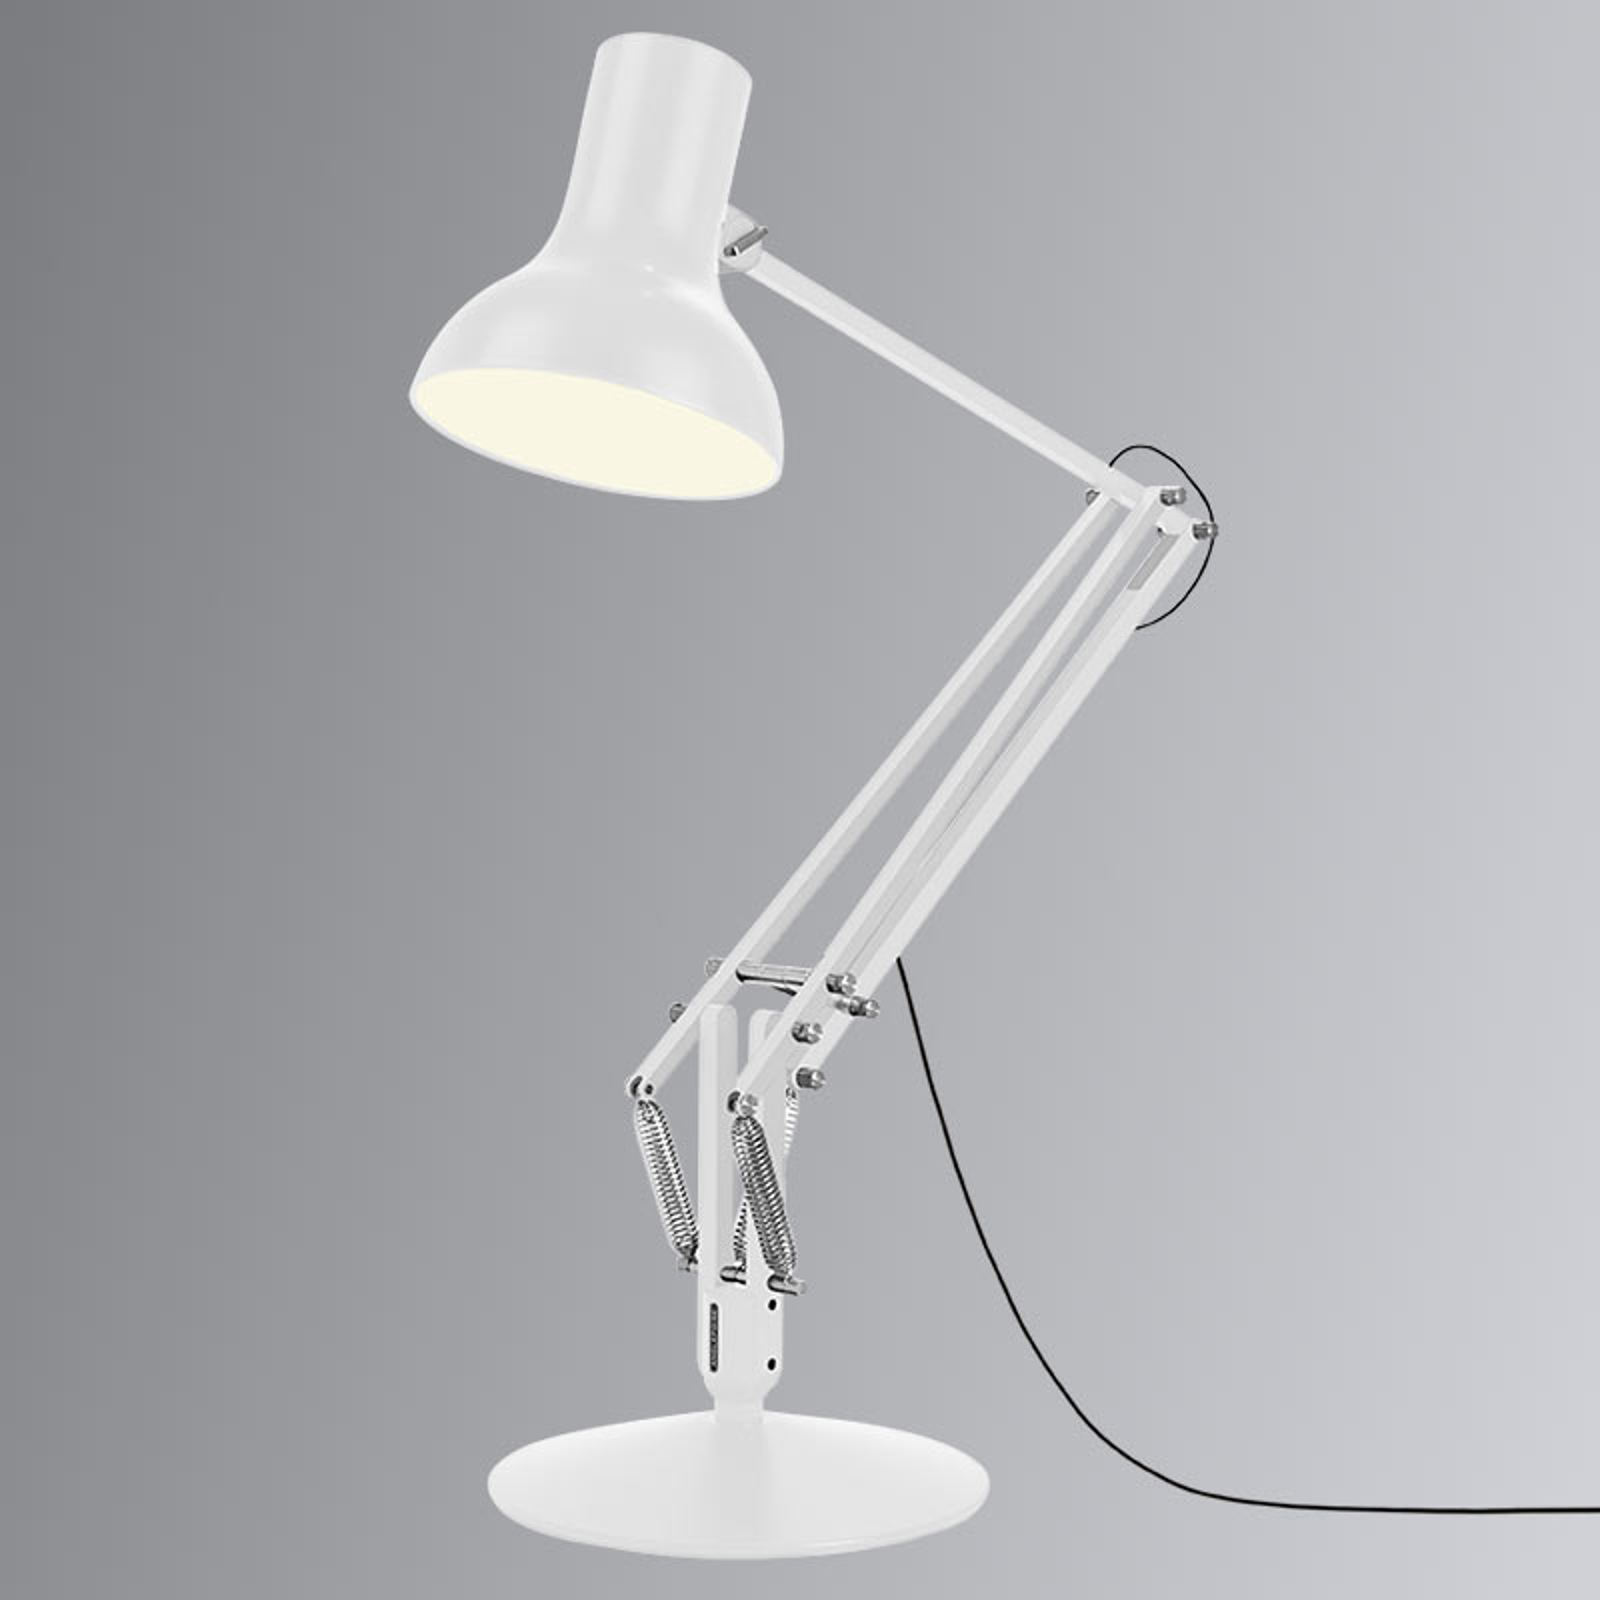 Anglepoise Type 75 Giant lampadaire blanc